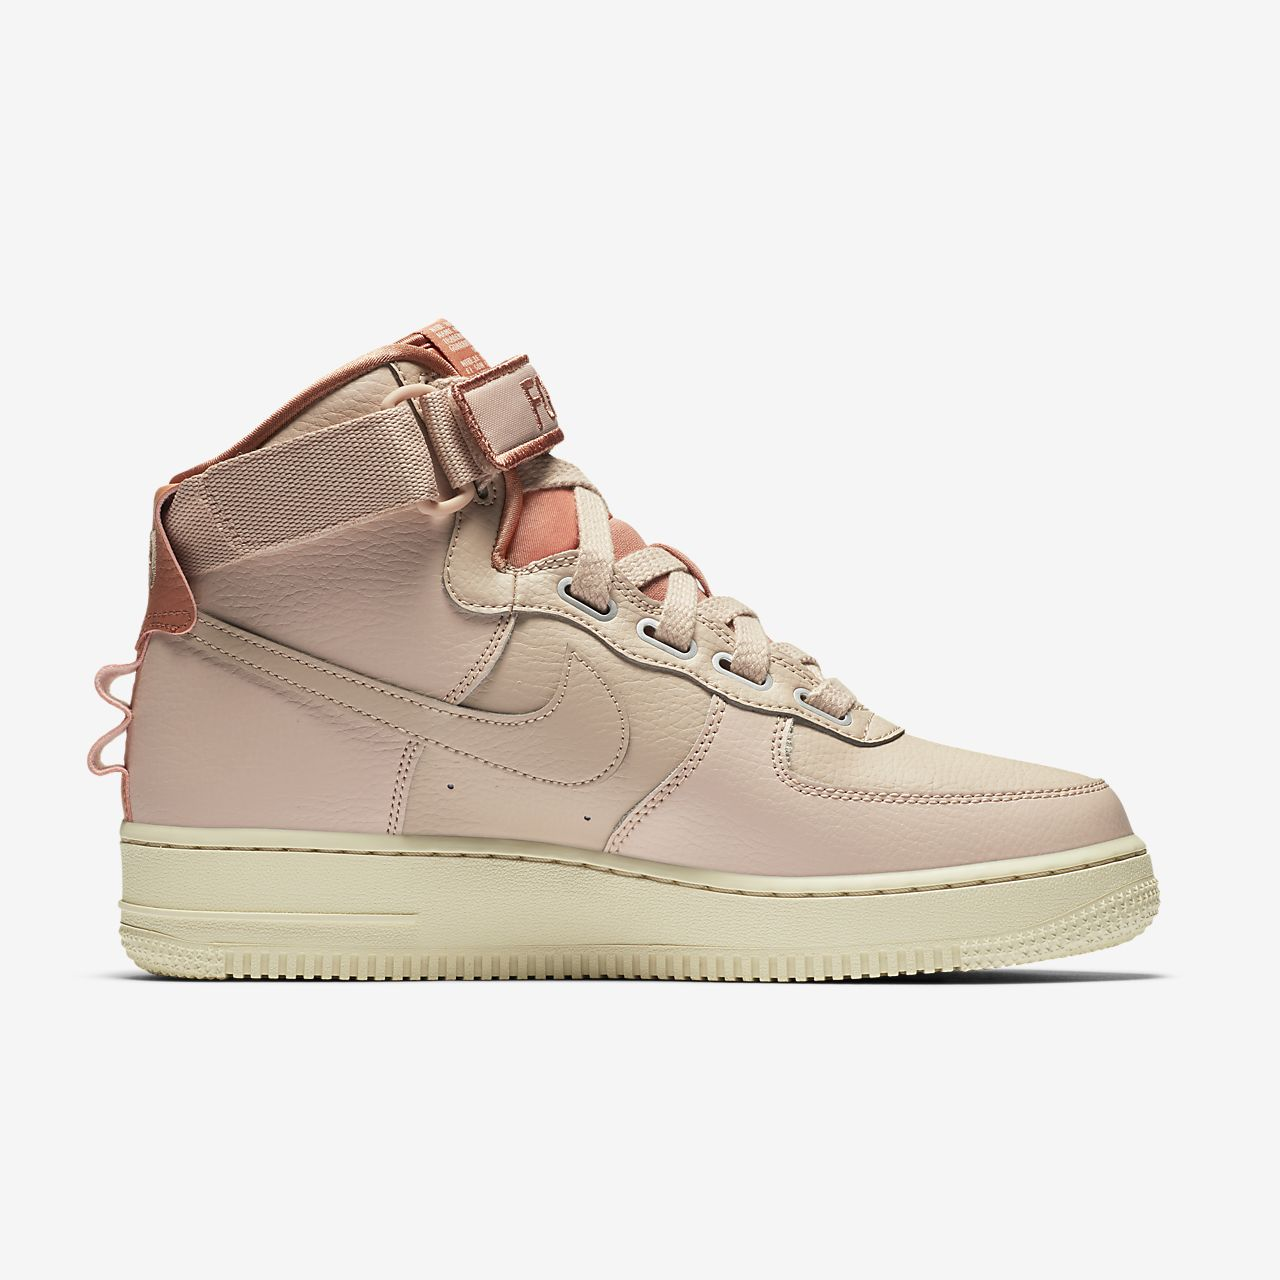 release info on f8830 08427 ... Nike Air Force 1 High Utility Women s Shoe